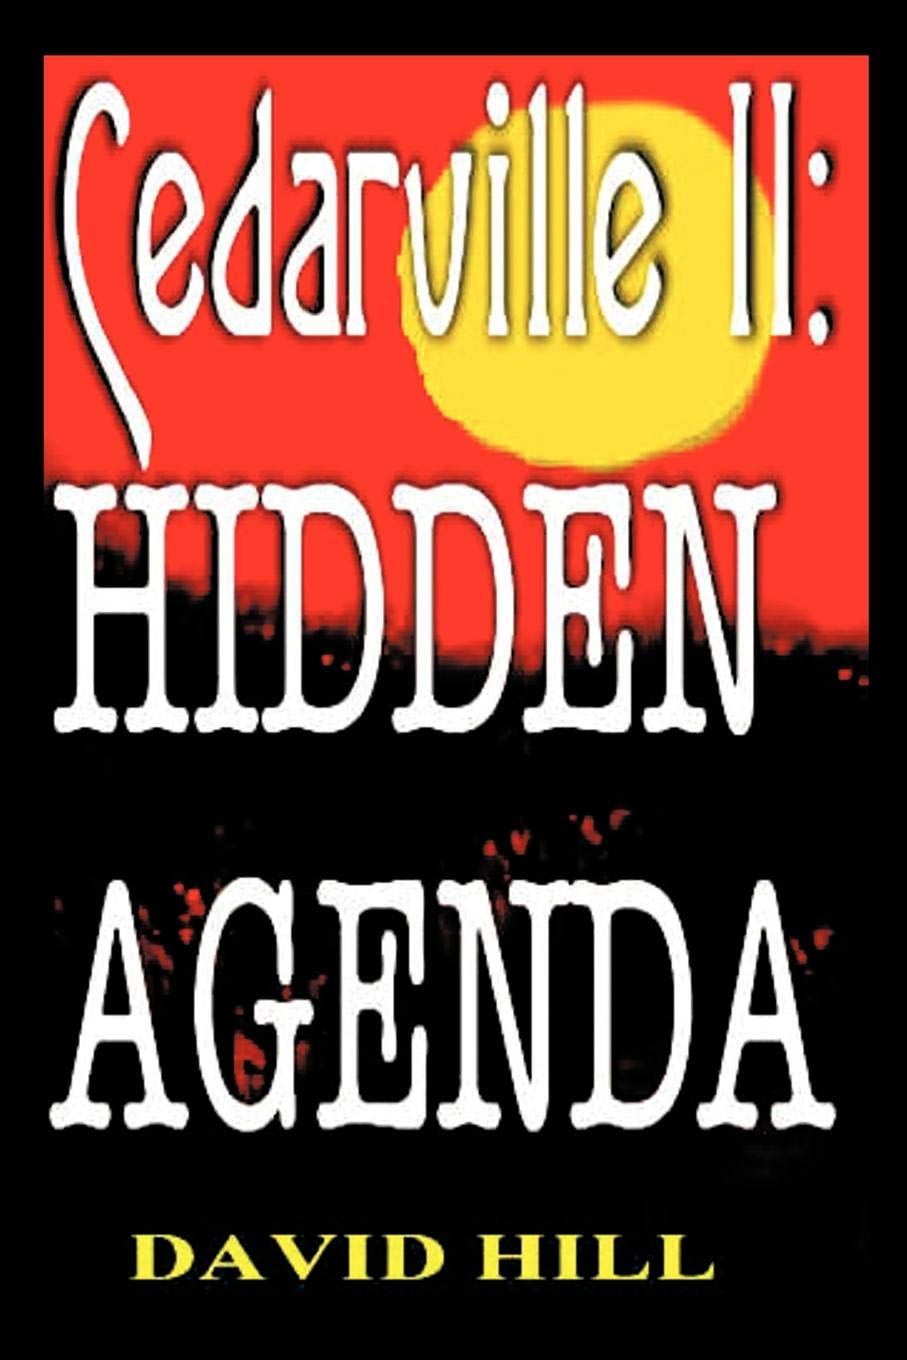 Cedarville II: Hidden Agenda: Amazon.es: David Hill: Libros ...